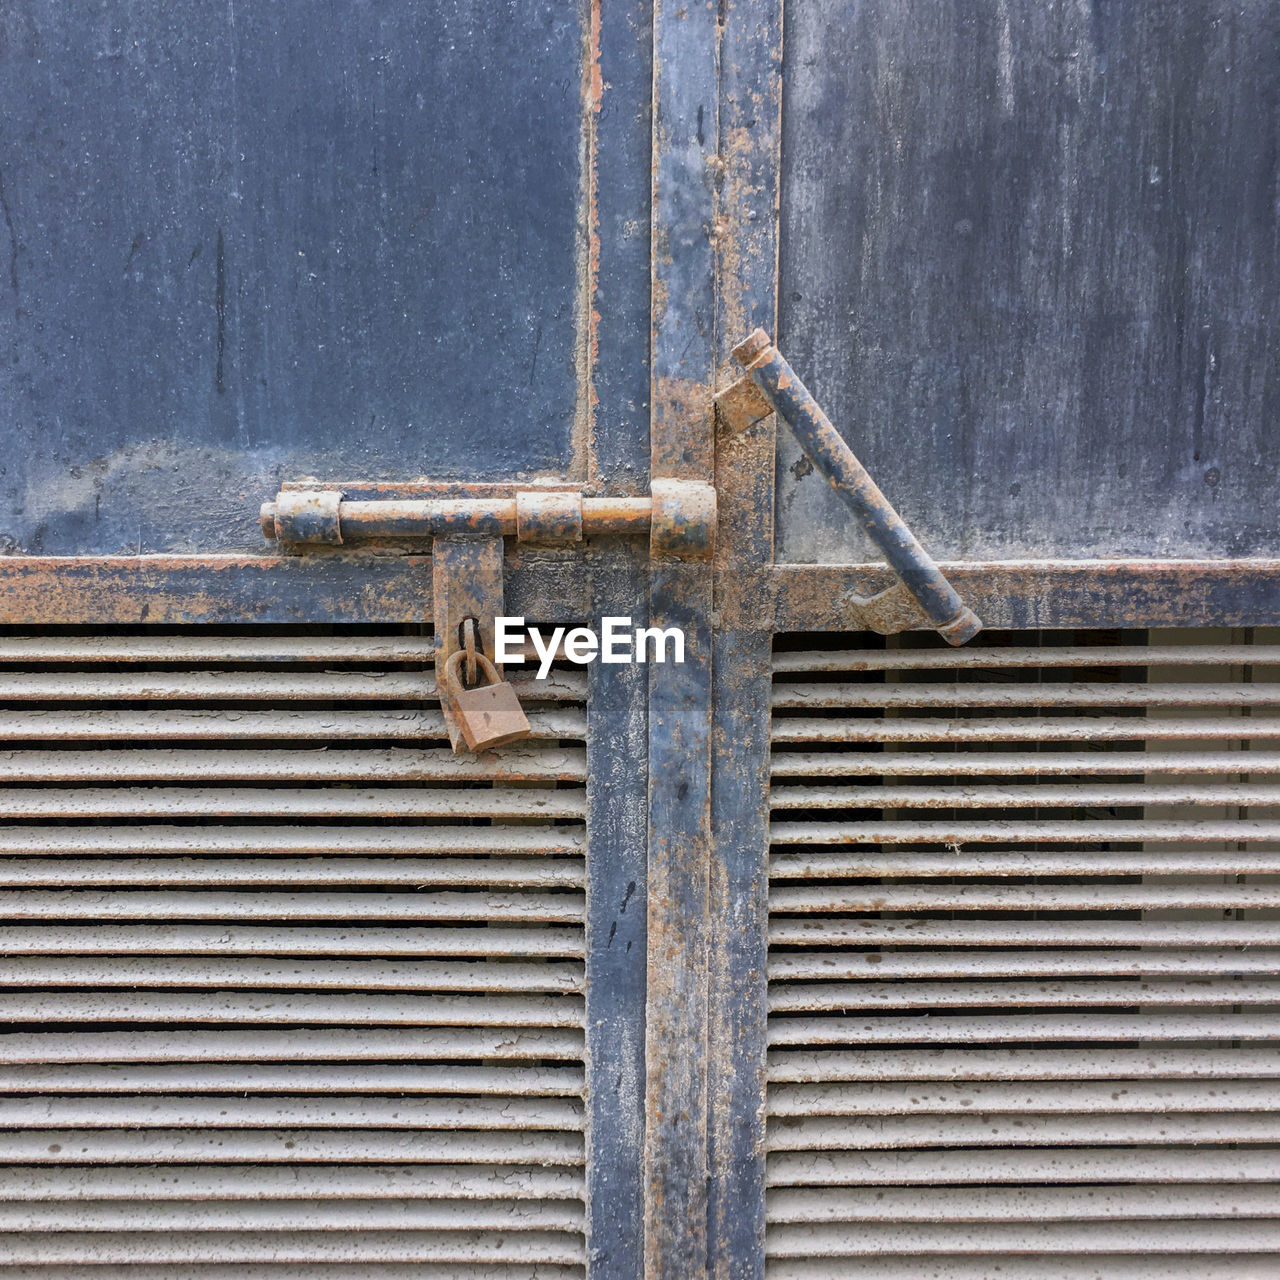 metal, no people, safety, architecture, security, day, pattern, wall - building feature, protection, outdoors, old, entrance, close-up, rusty, closed, wood - material, gray, building exterior, latch, door, iron, alloy, corrugated, steel